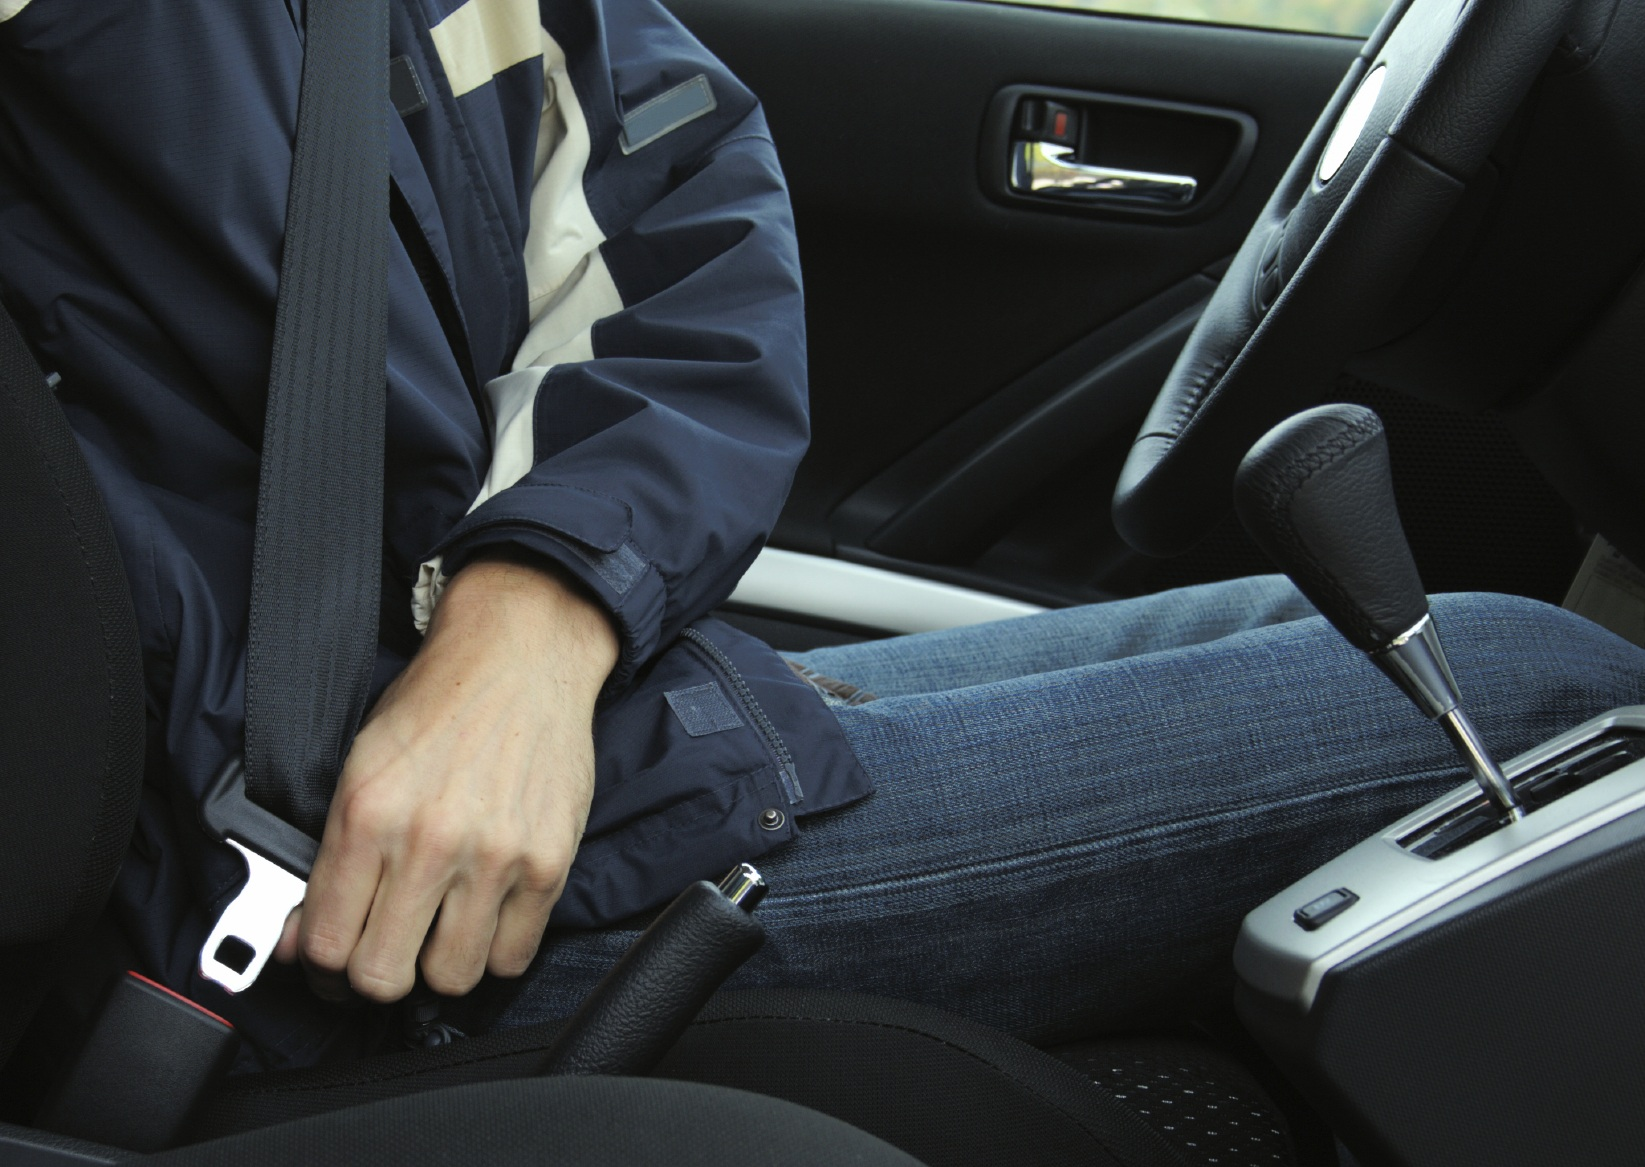 Maruti Suzuki Study Reveals that only 25 percent of Motorists in India use Seatbelts